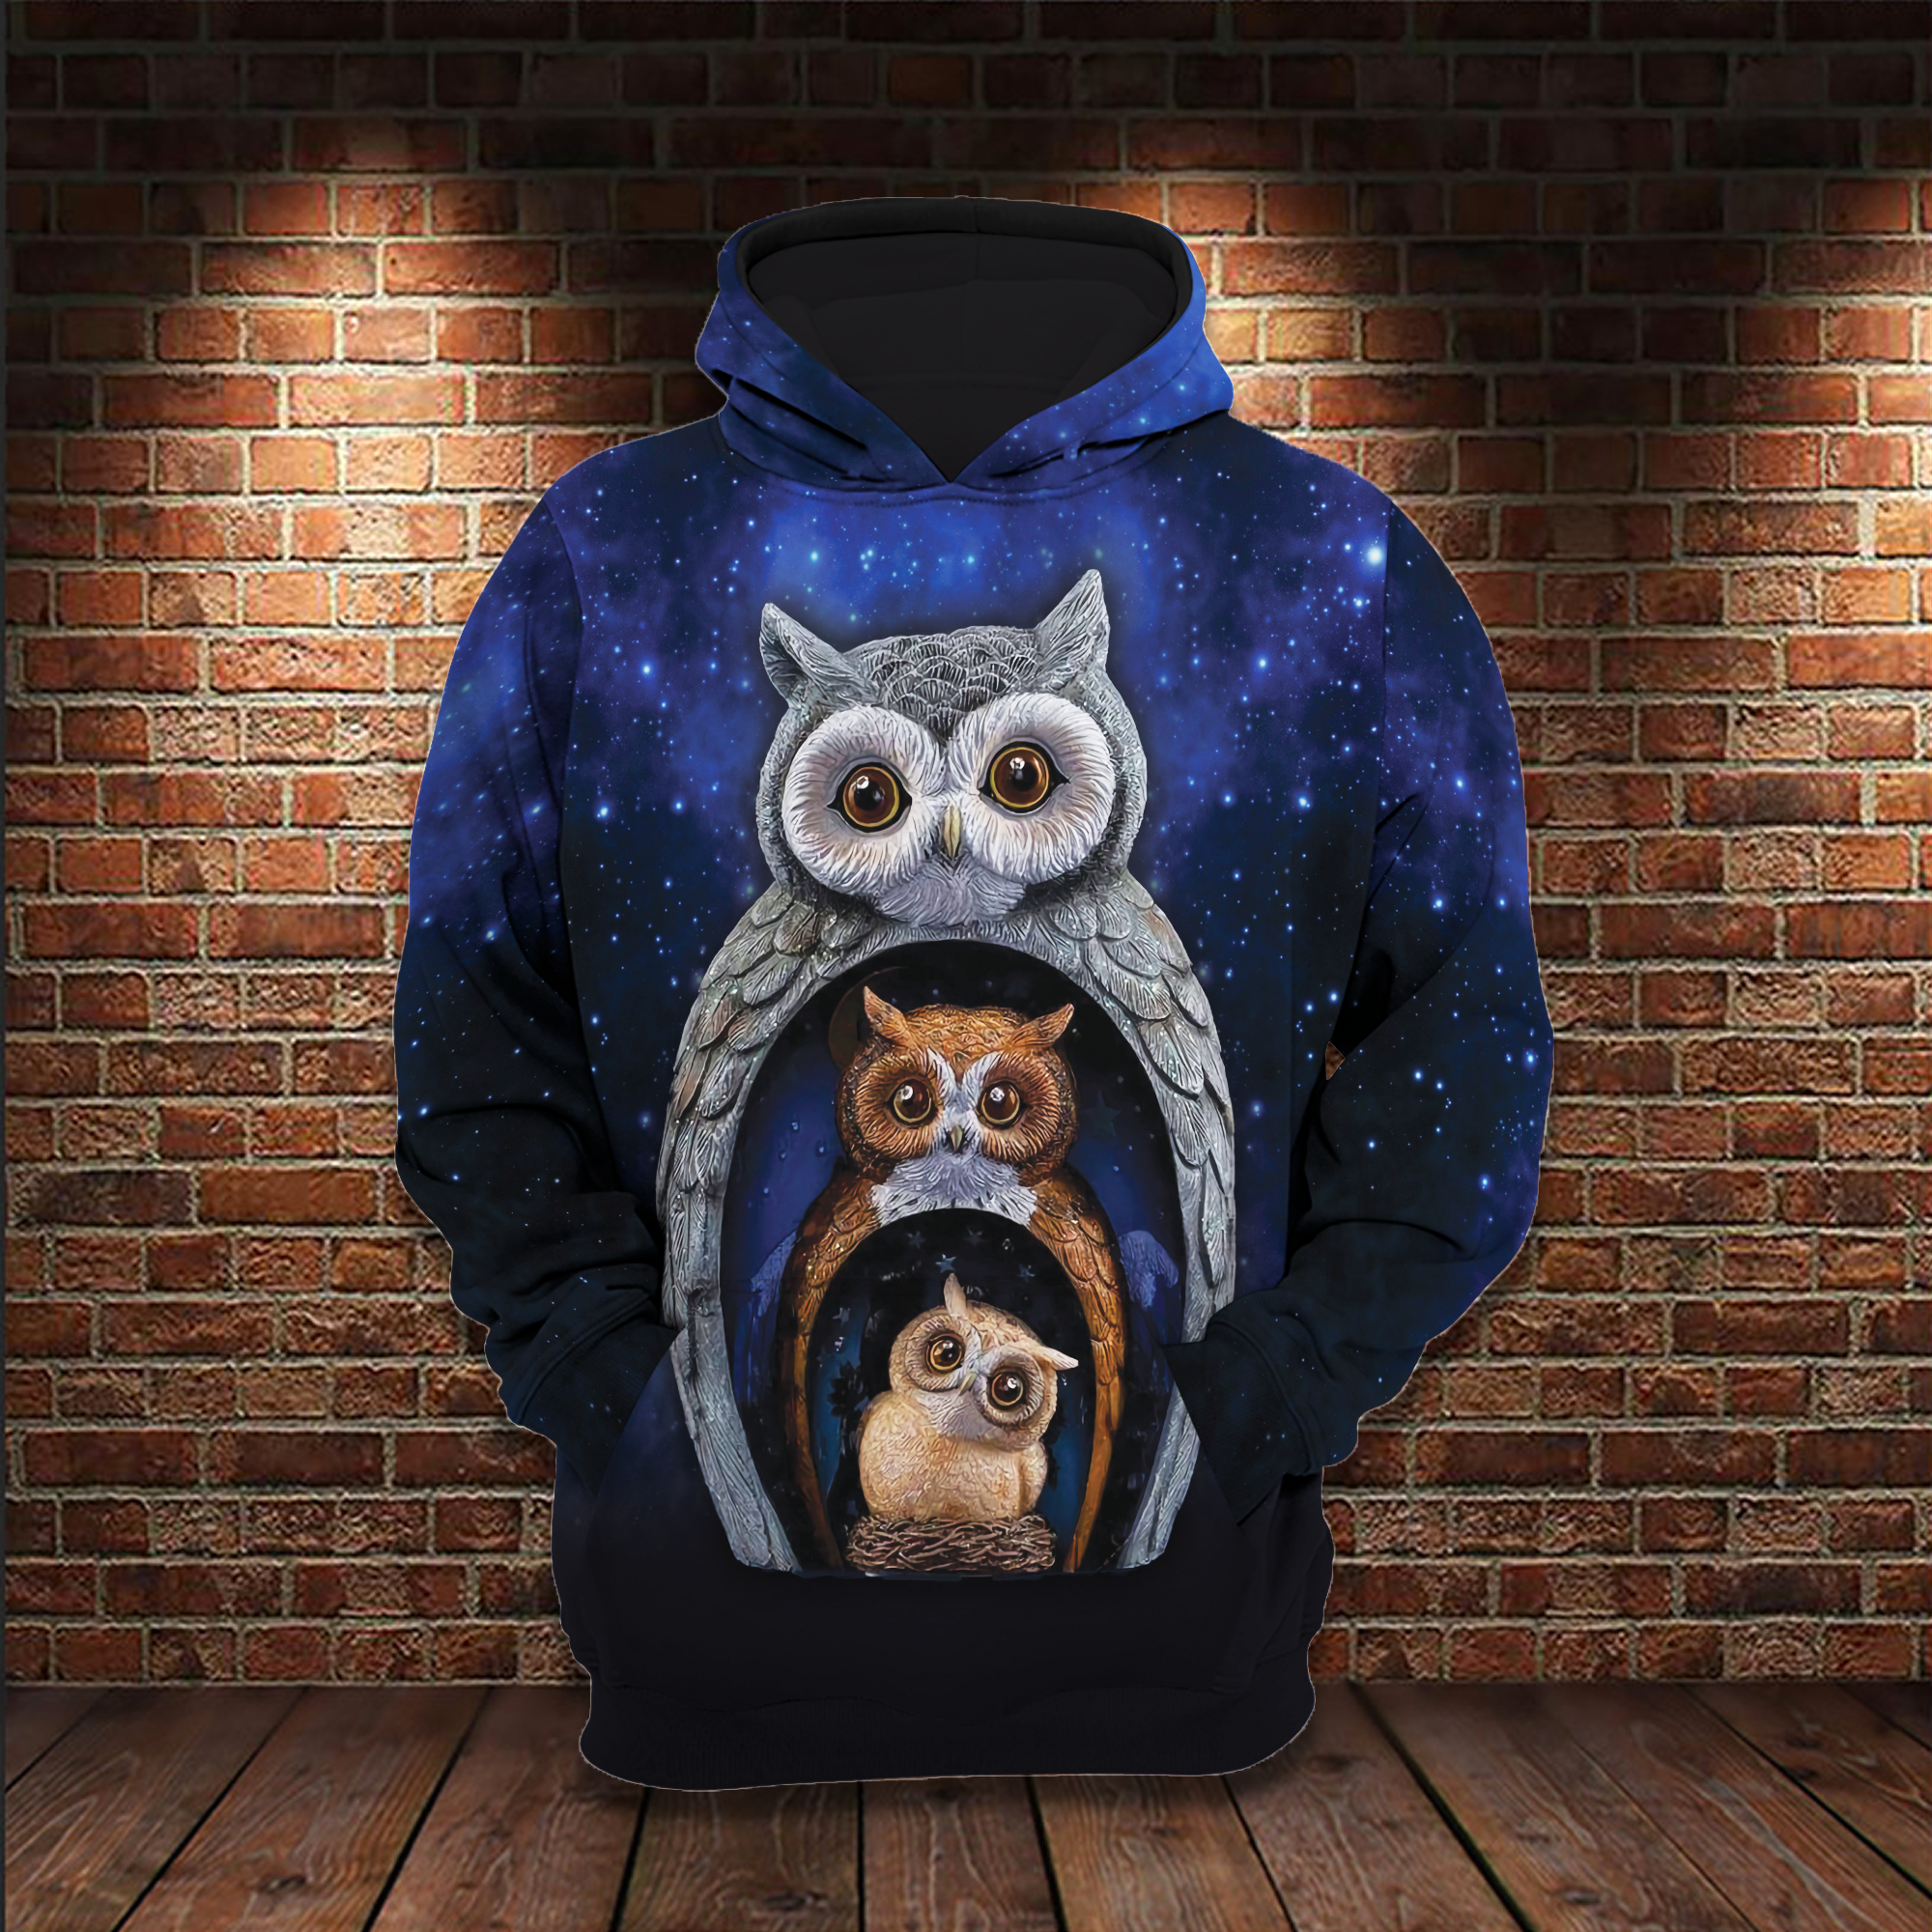 Owl Family At Midnight Halloween 3D Hoodie